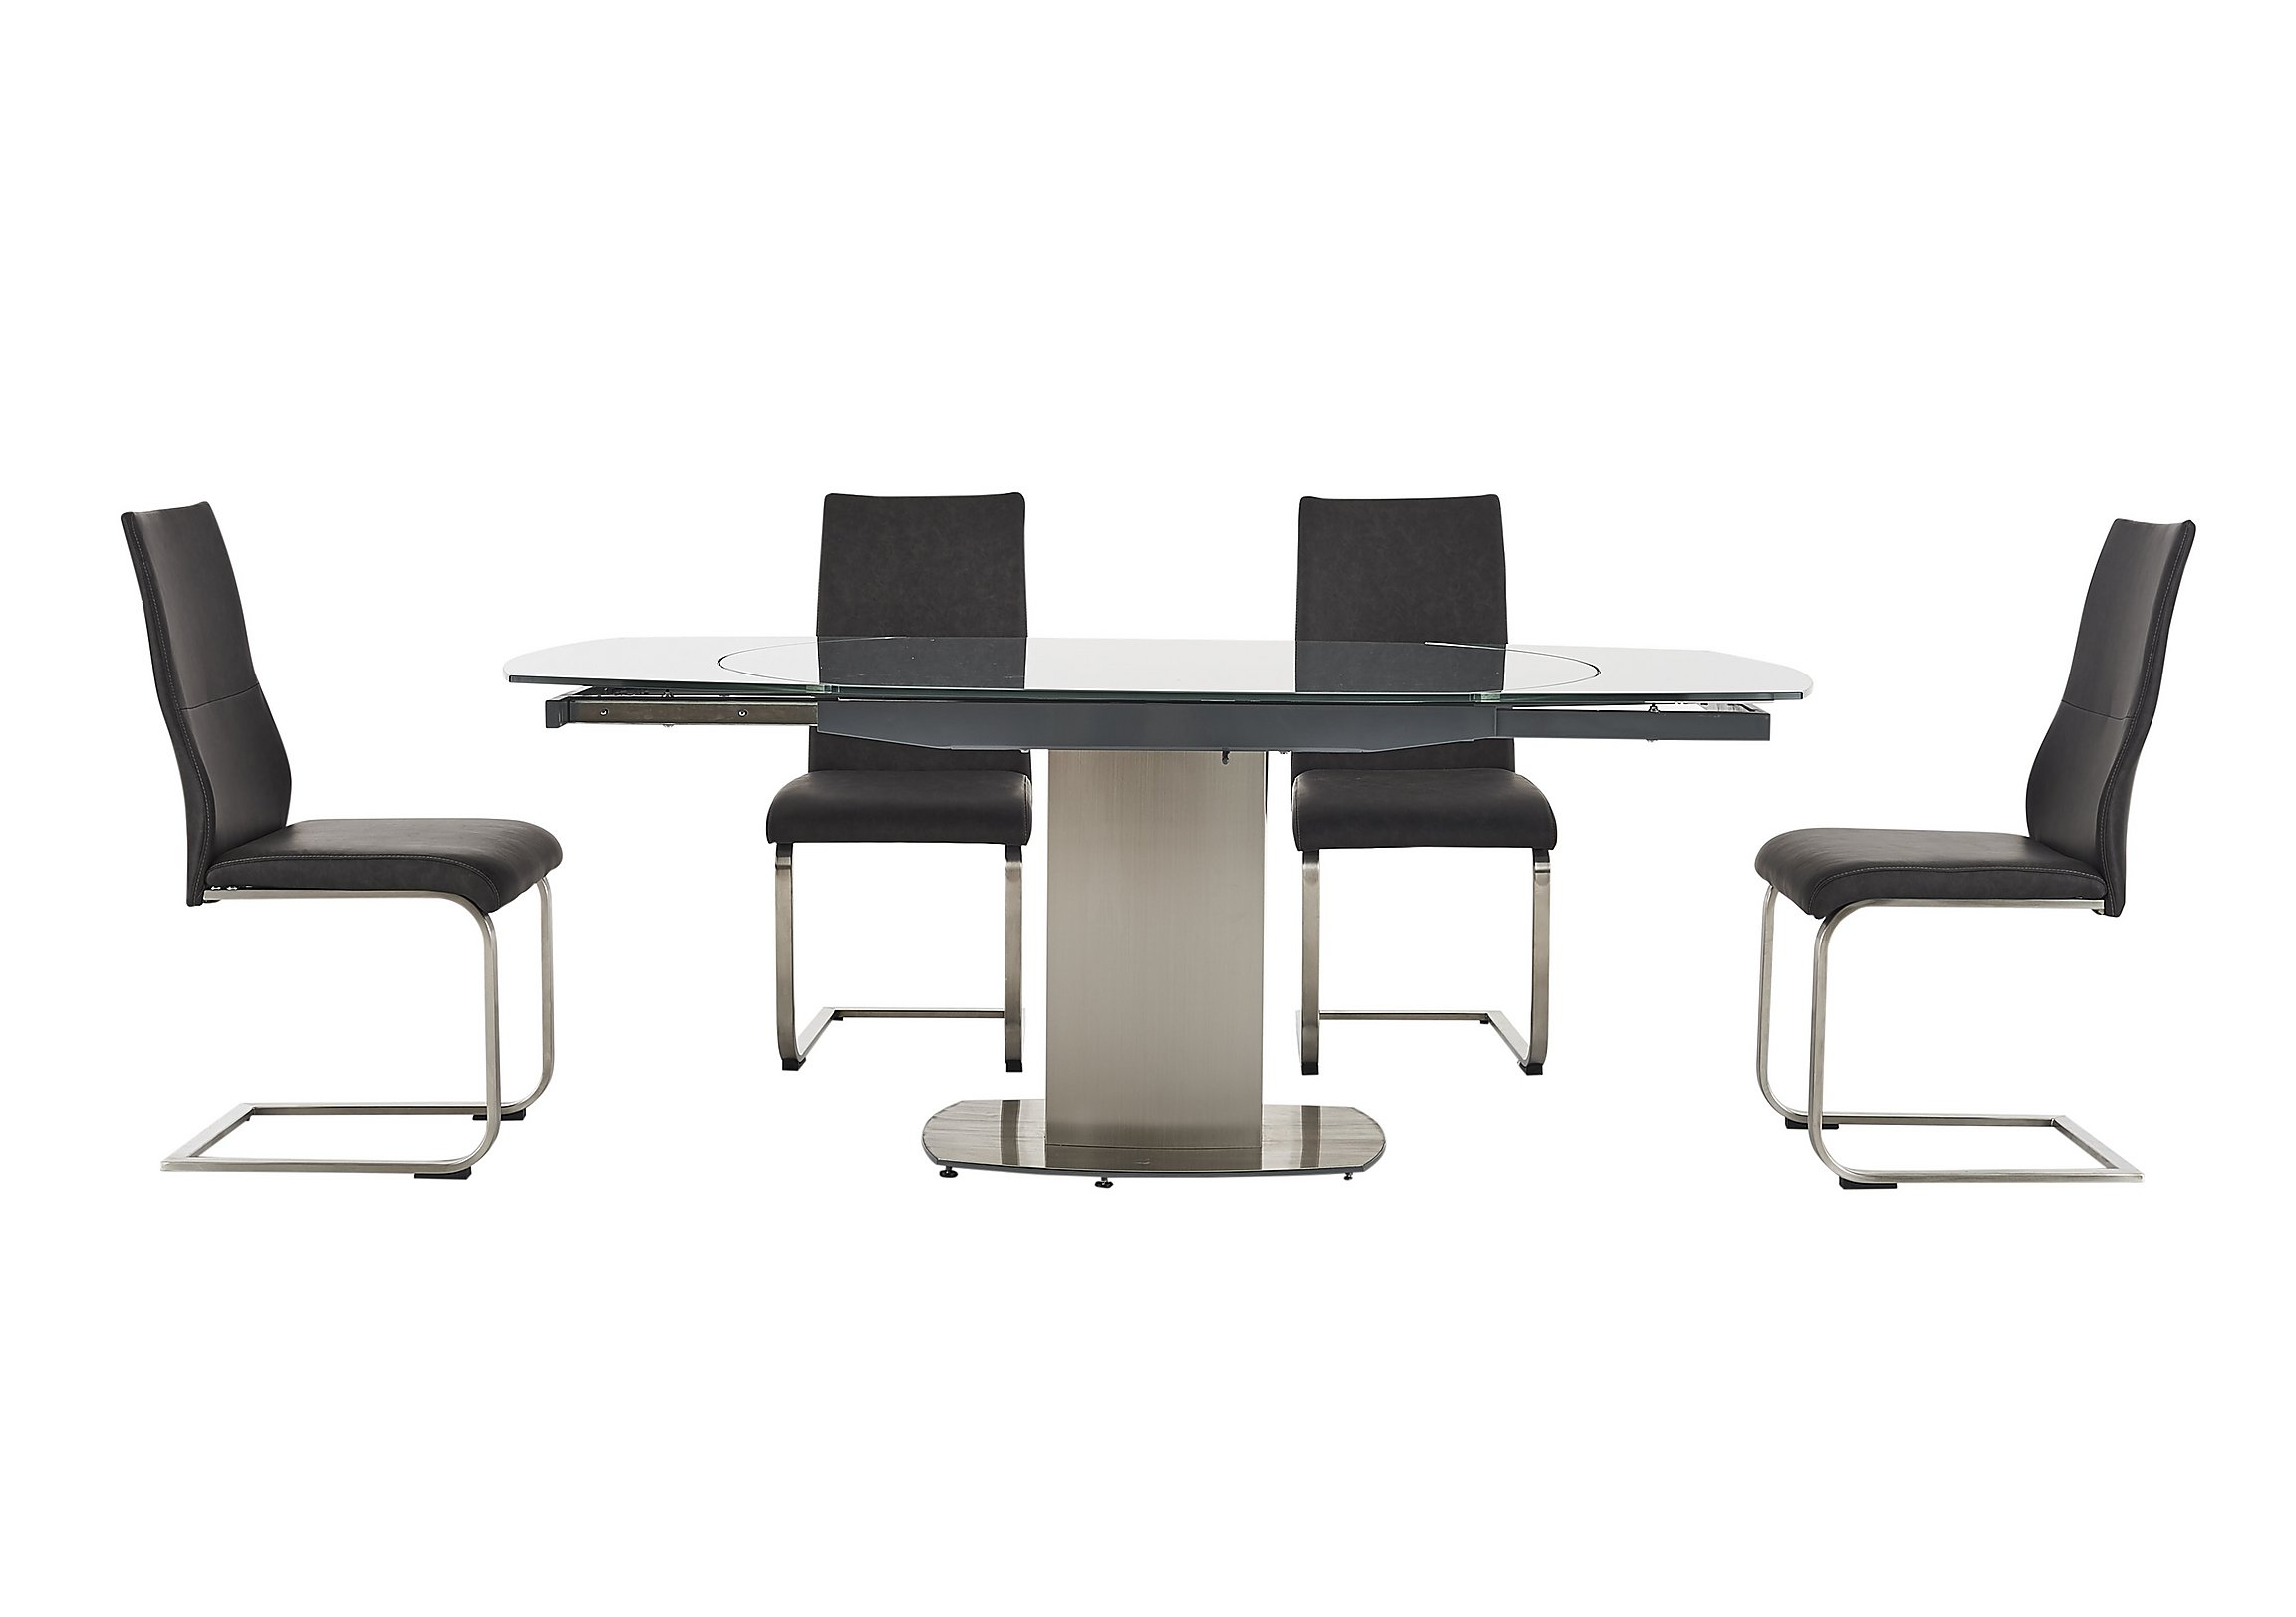 https://i1.adis.ws/i/fv/PRODFL-WDSET--001_flow_dining-table-and-four-chairs?$zoom$&h=1623&w=2304